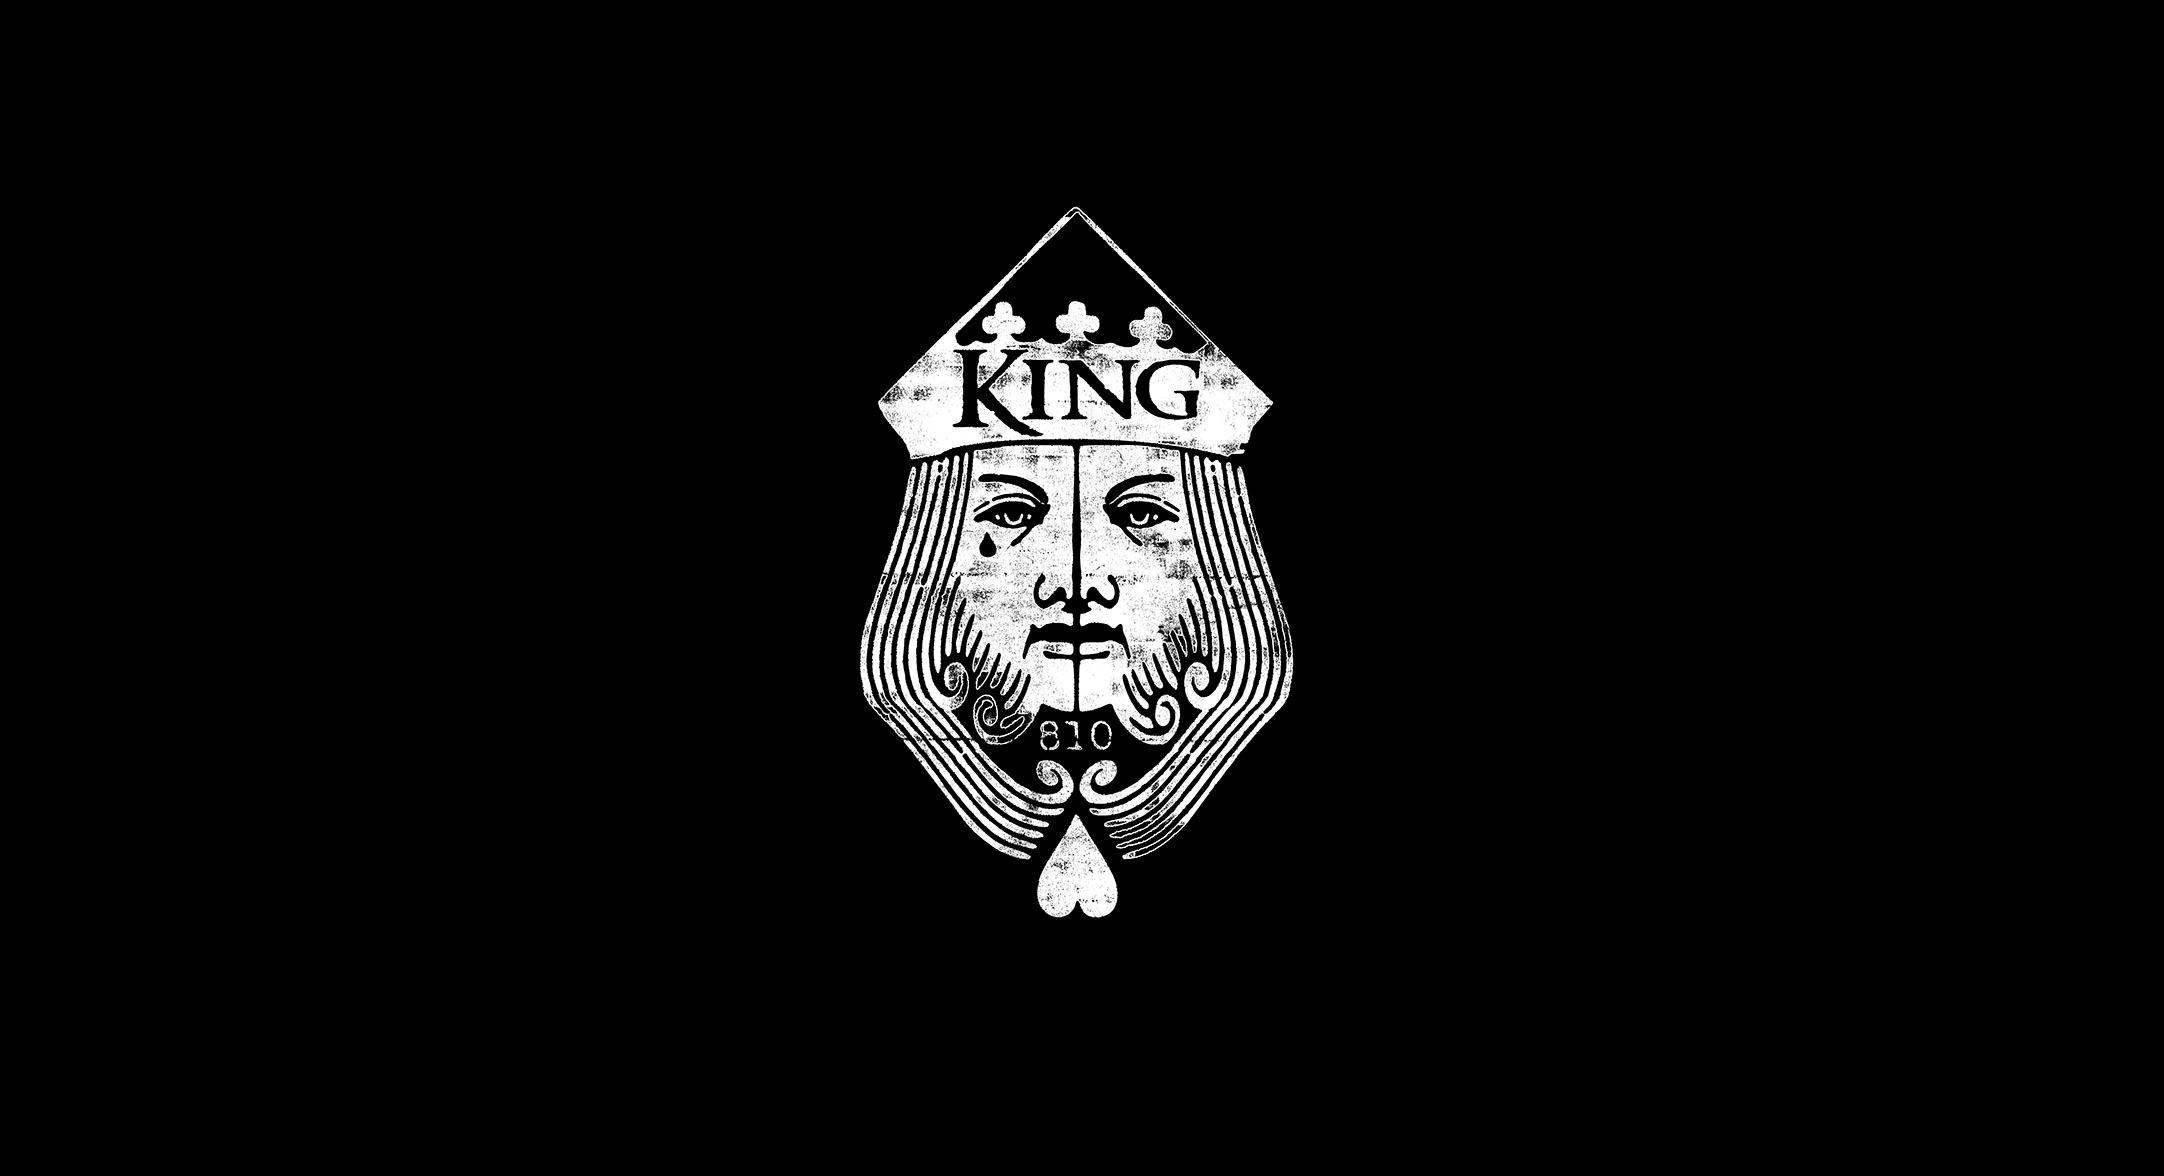 King Crown Wallpapers HD For Desktop - Wallpaper Cave